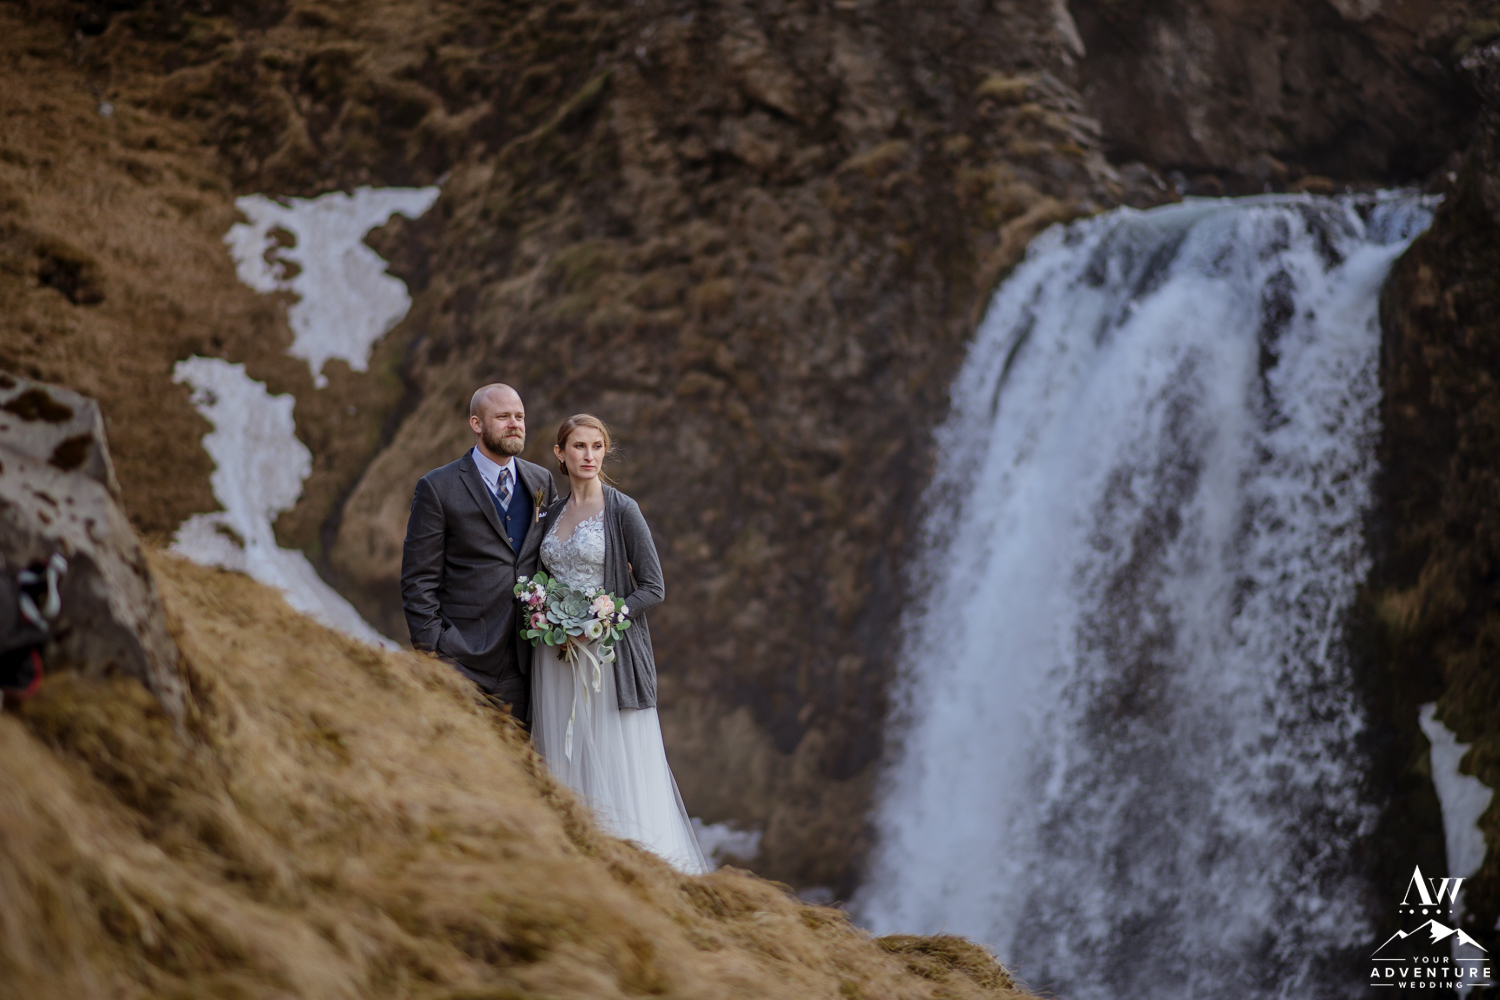 Adventurous Hiking Elopement Couple in front of a waterfall in Iceland